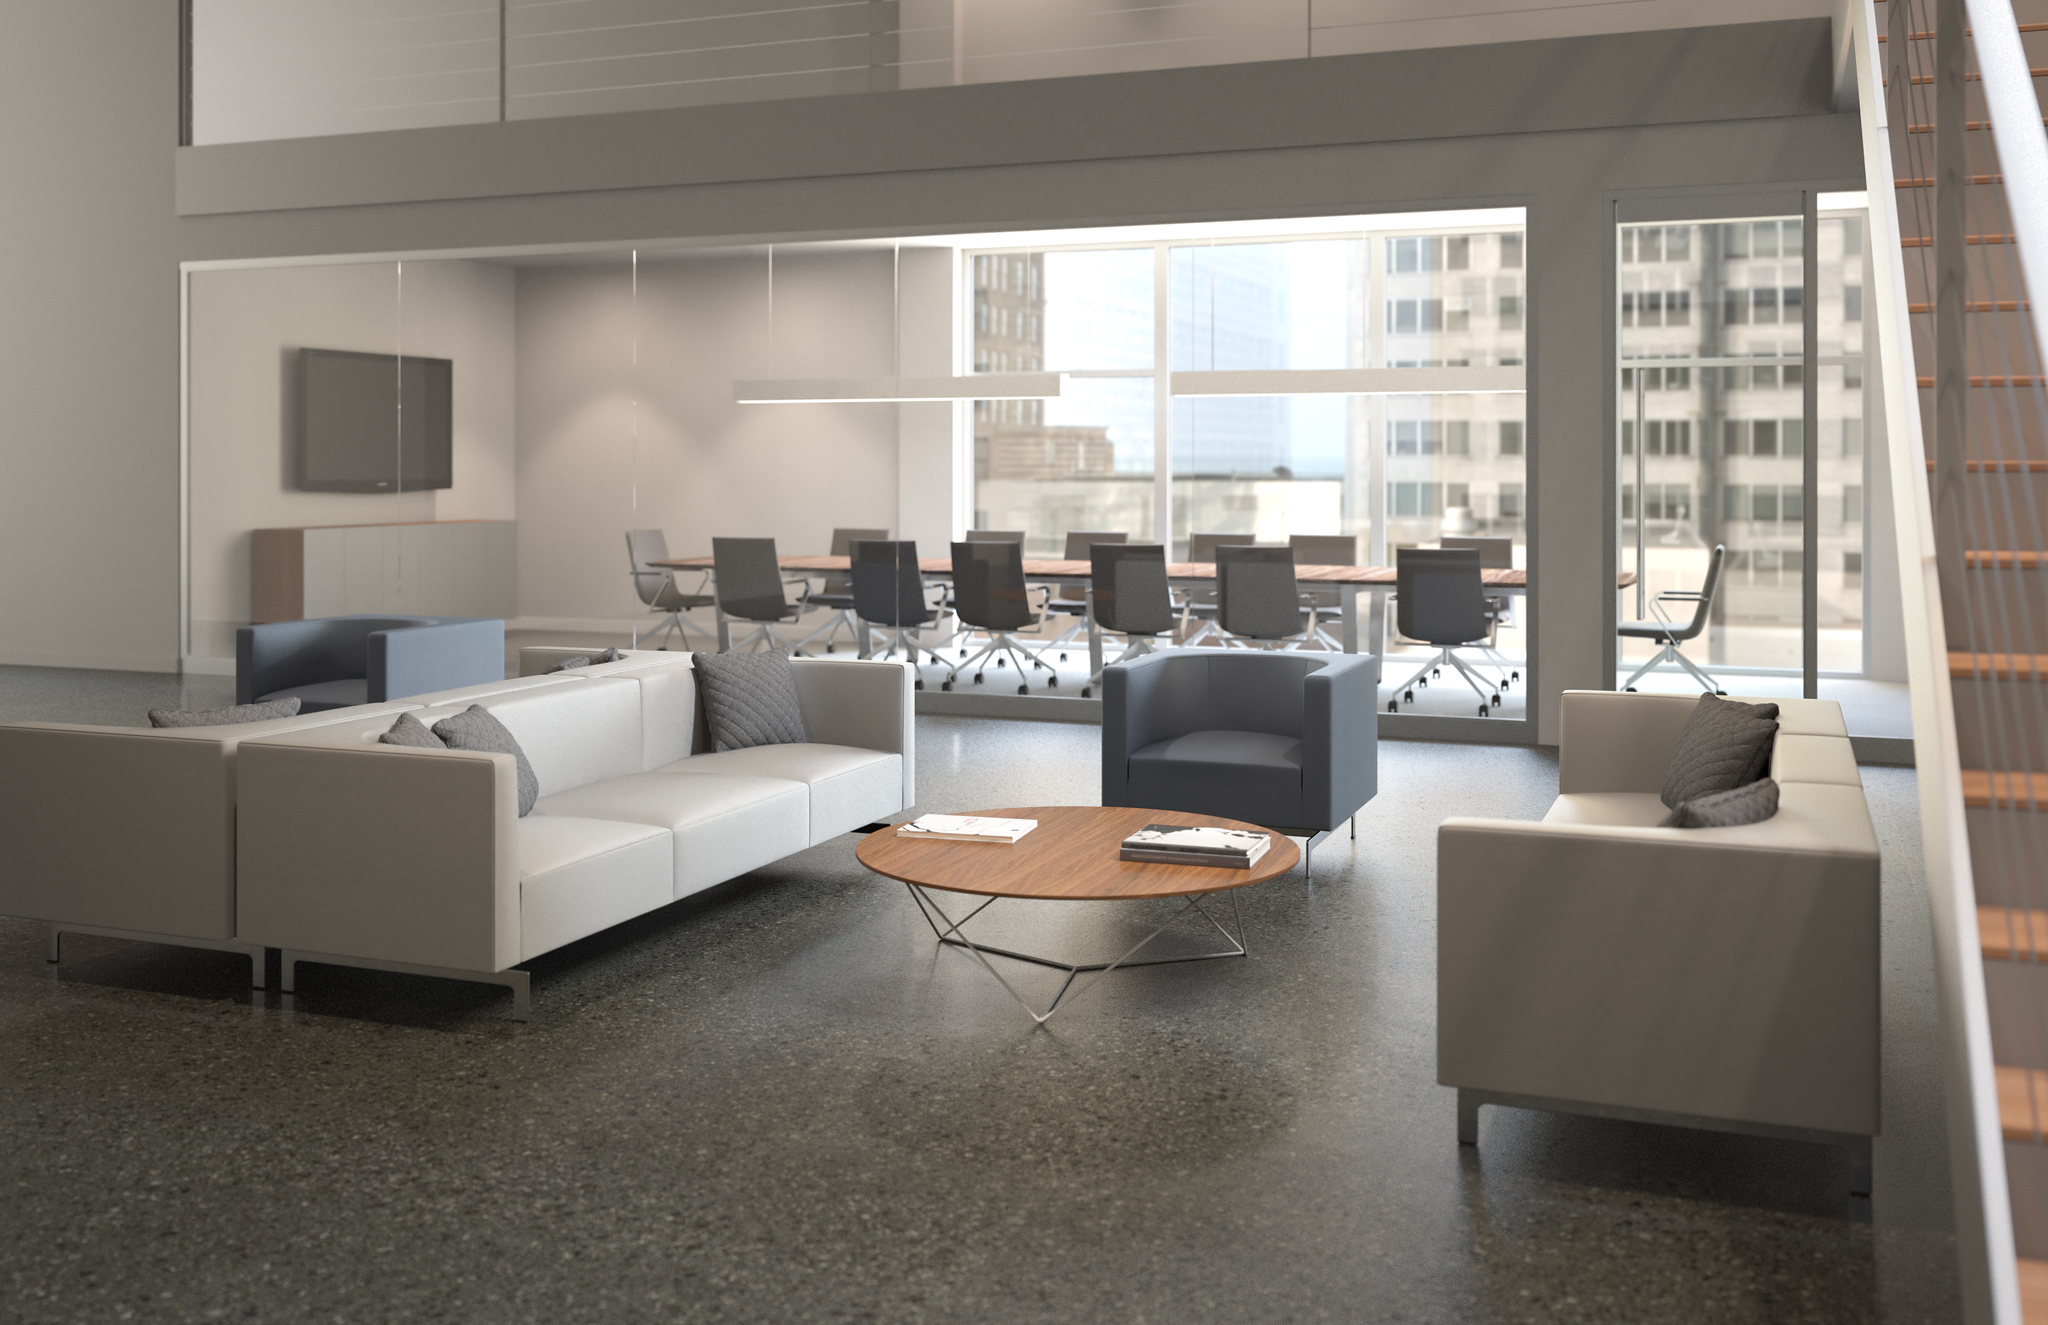 office conference lounge furniture 3d rendering